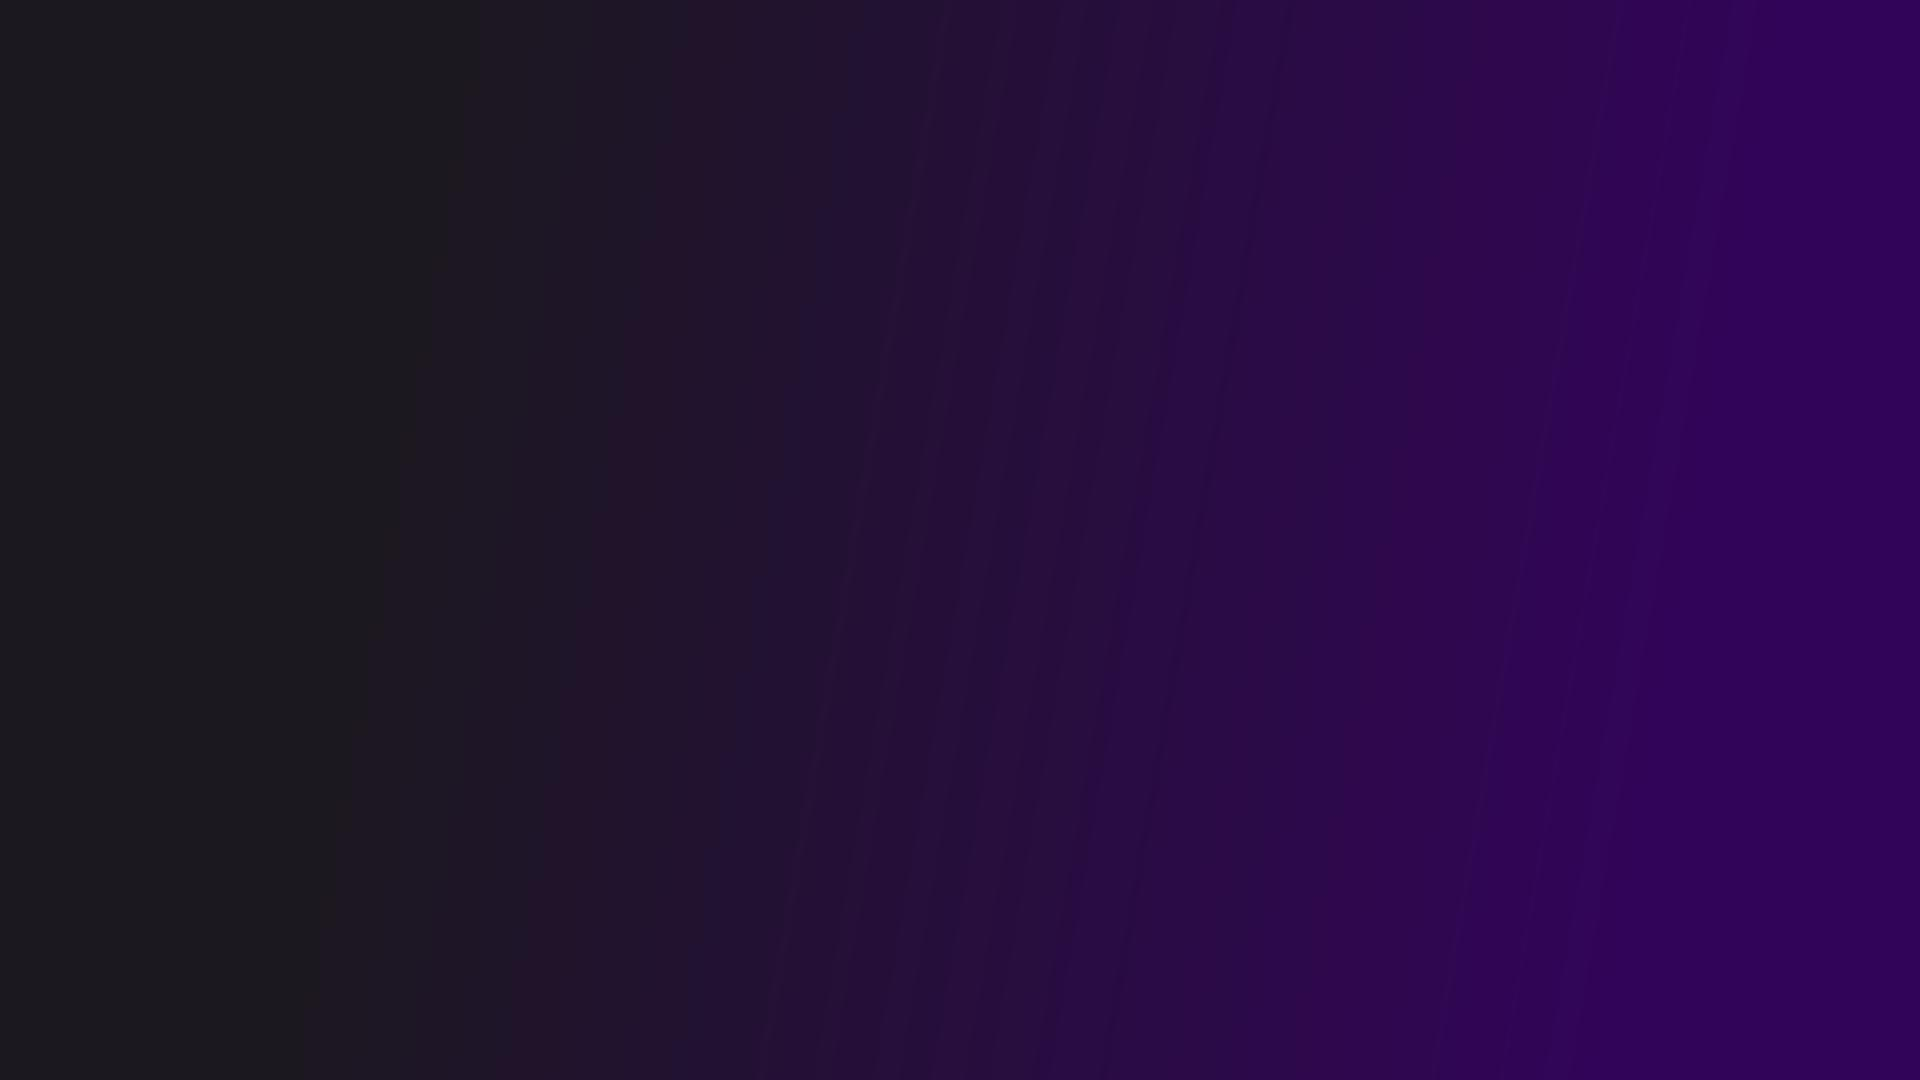 Outer Space Gradient